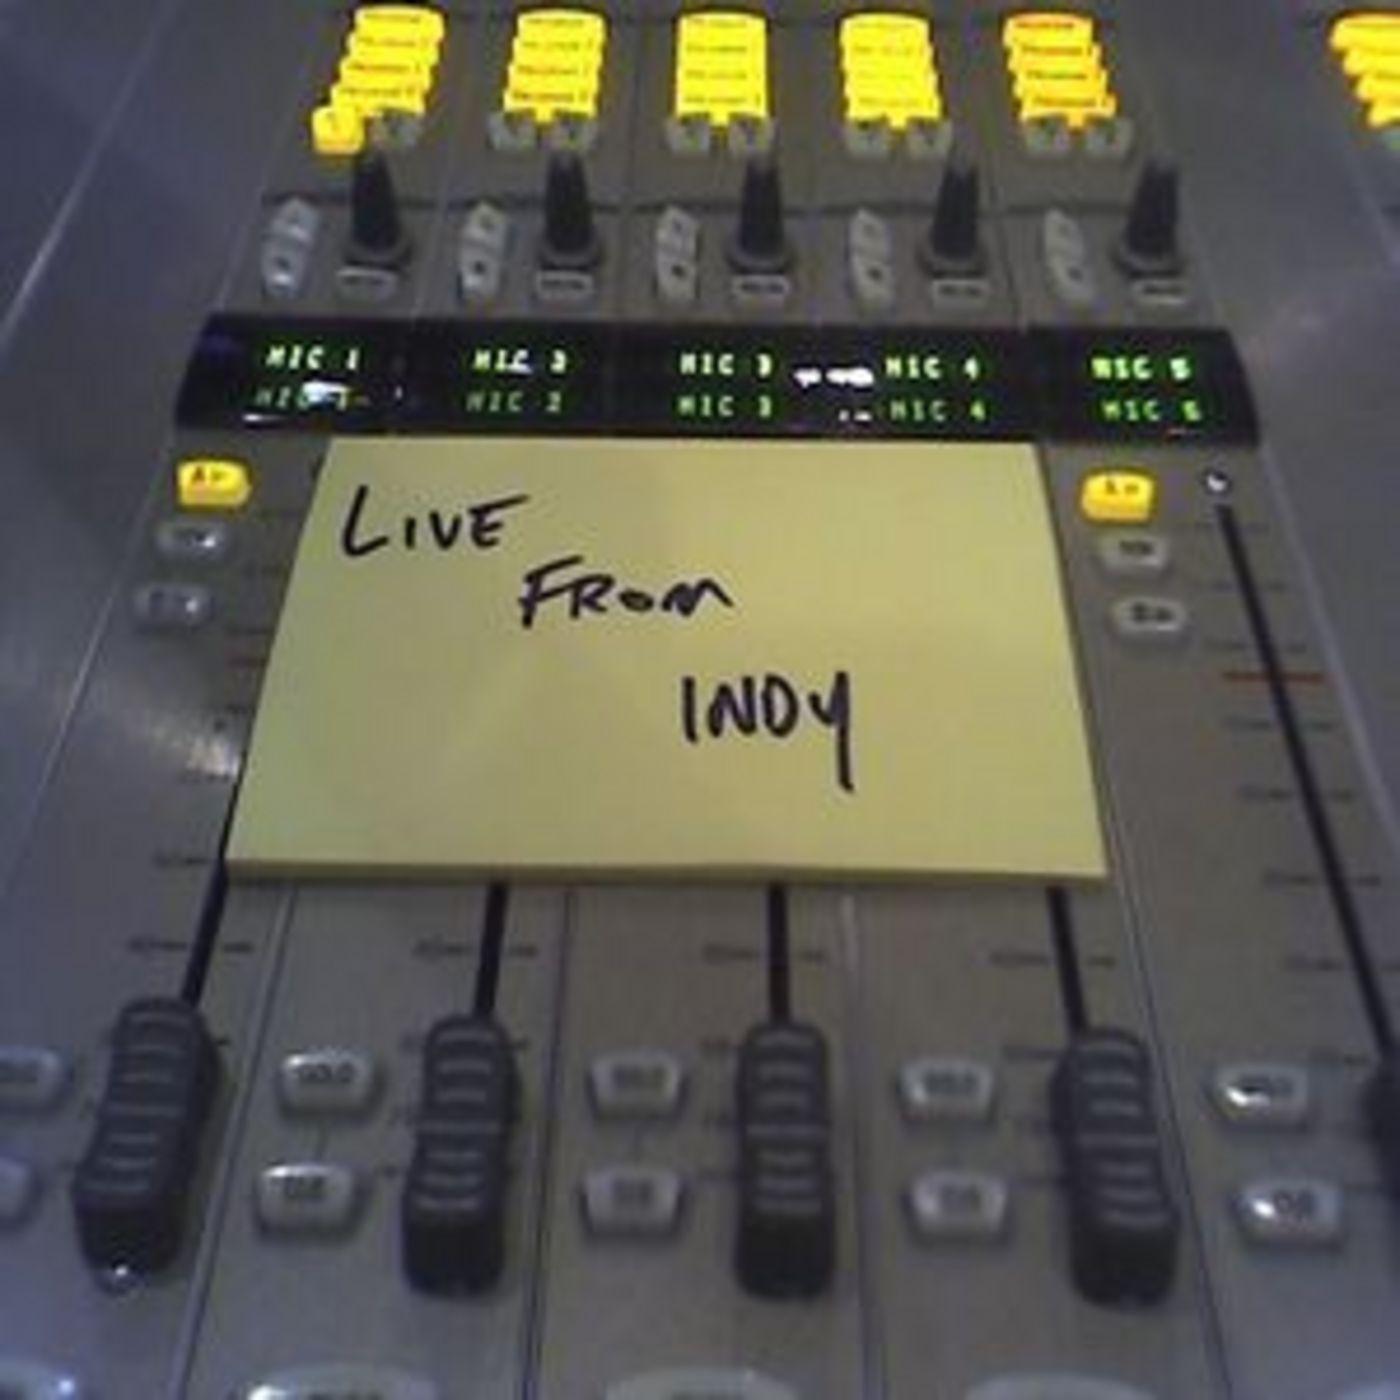 <![CDATA[Live From Indy]]>